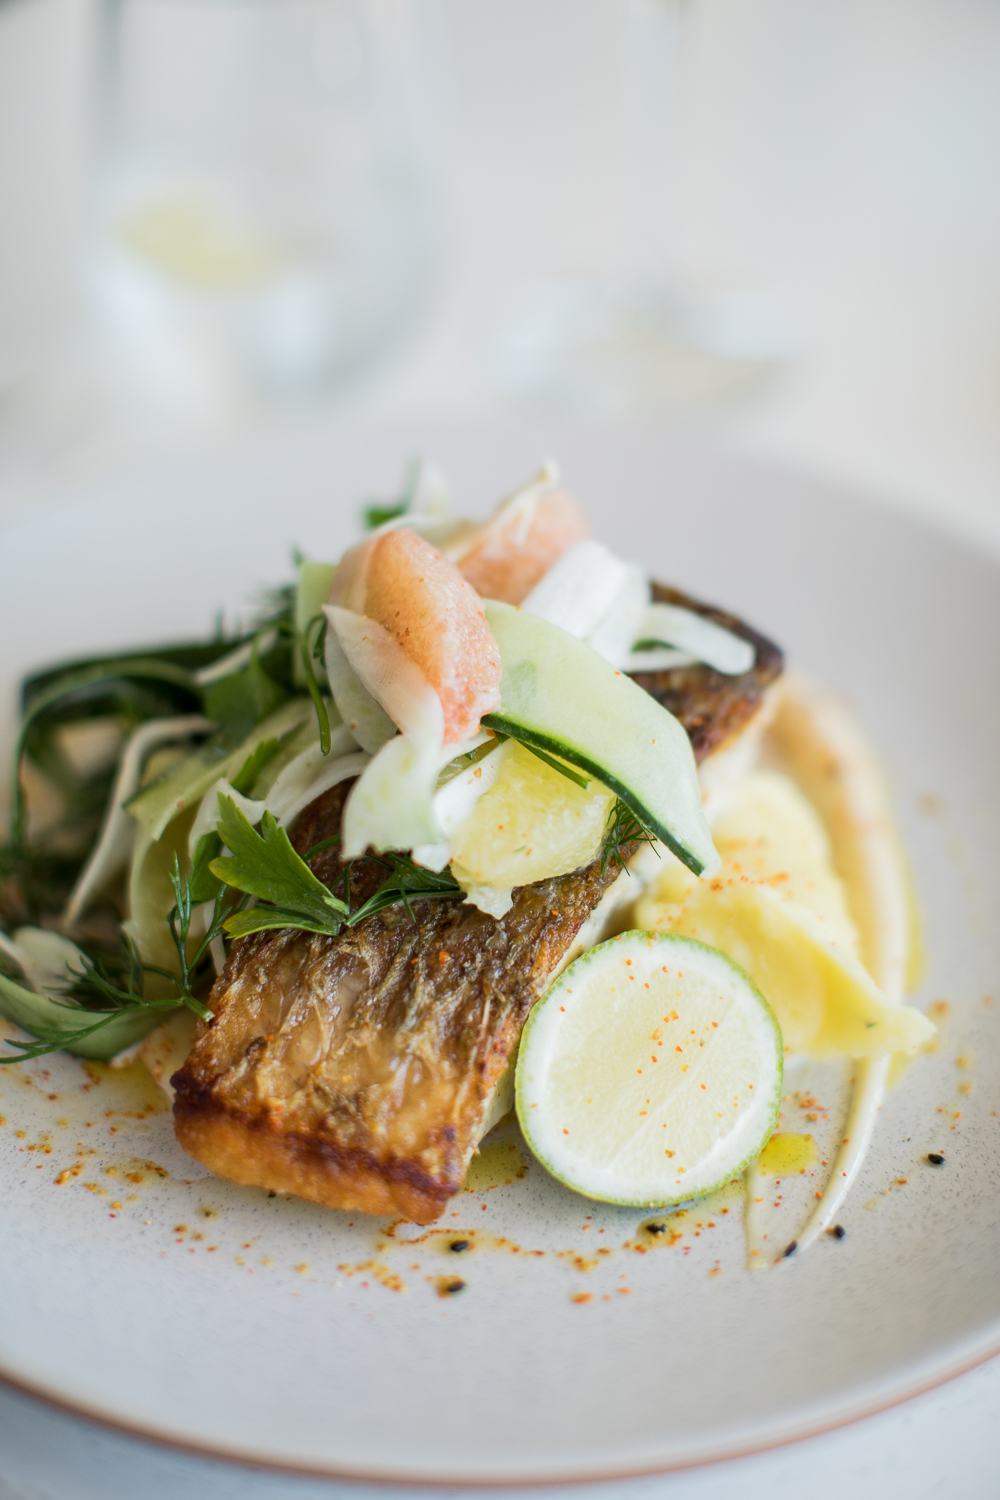 fish of the day - with wasabi mash, grapefruit, fennel & cucumber salad, anchovy kewpie